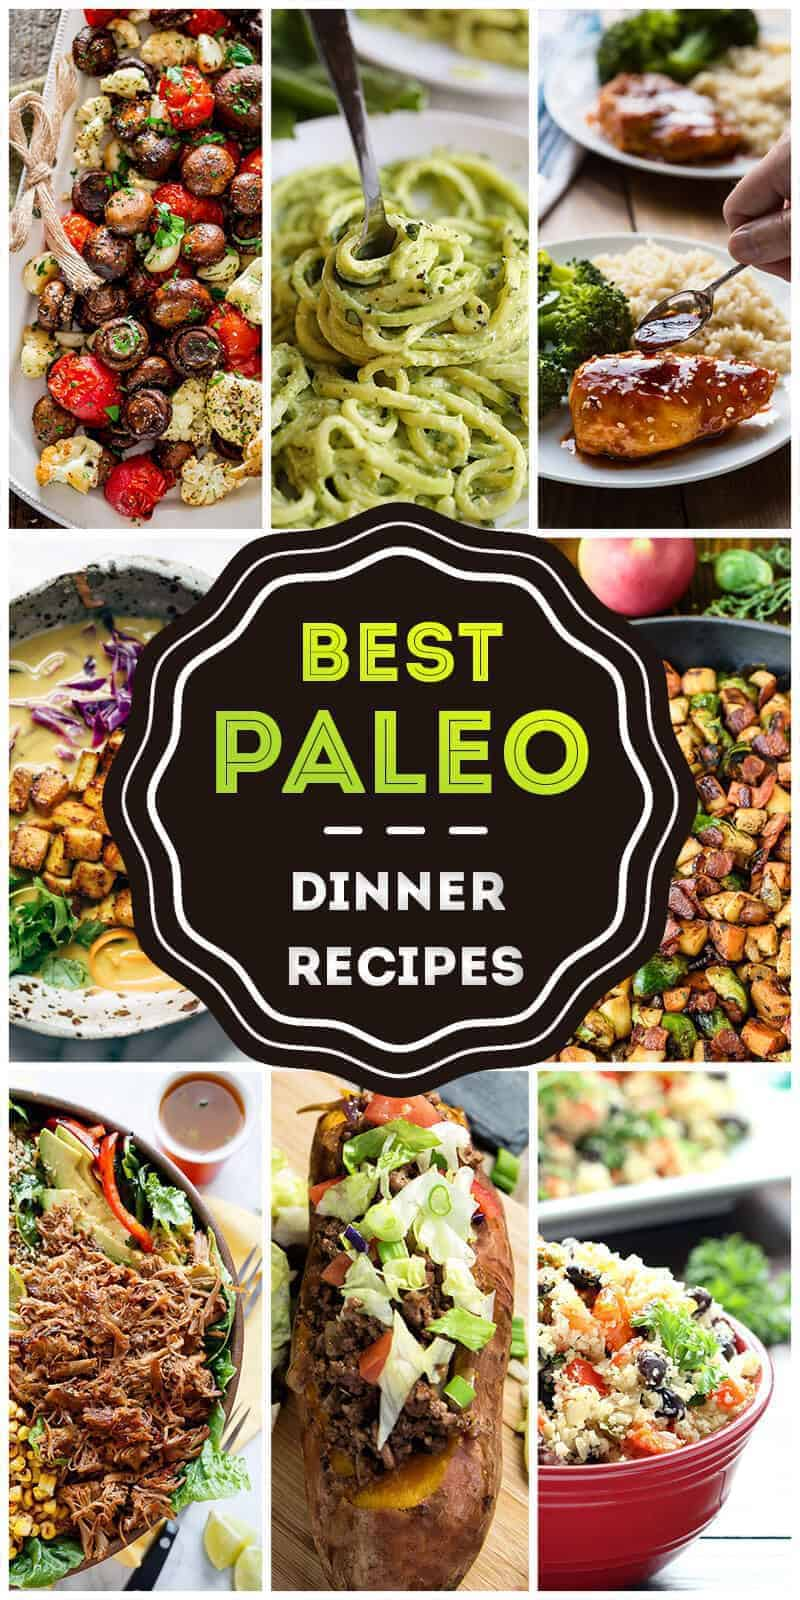 Paleo Dinner Recipe Ideas